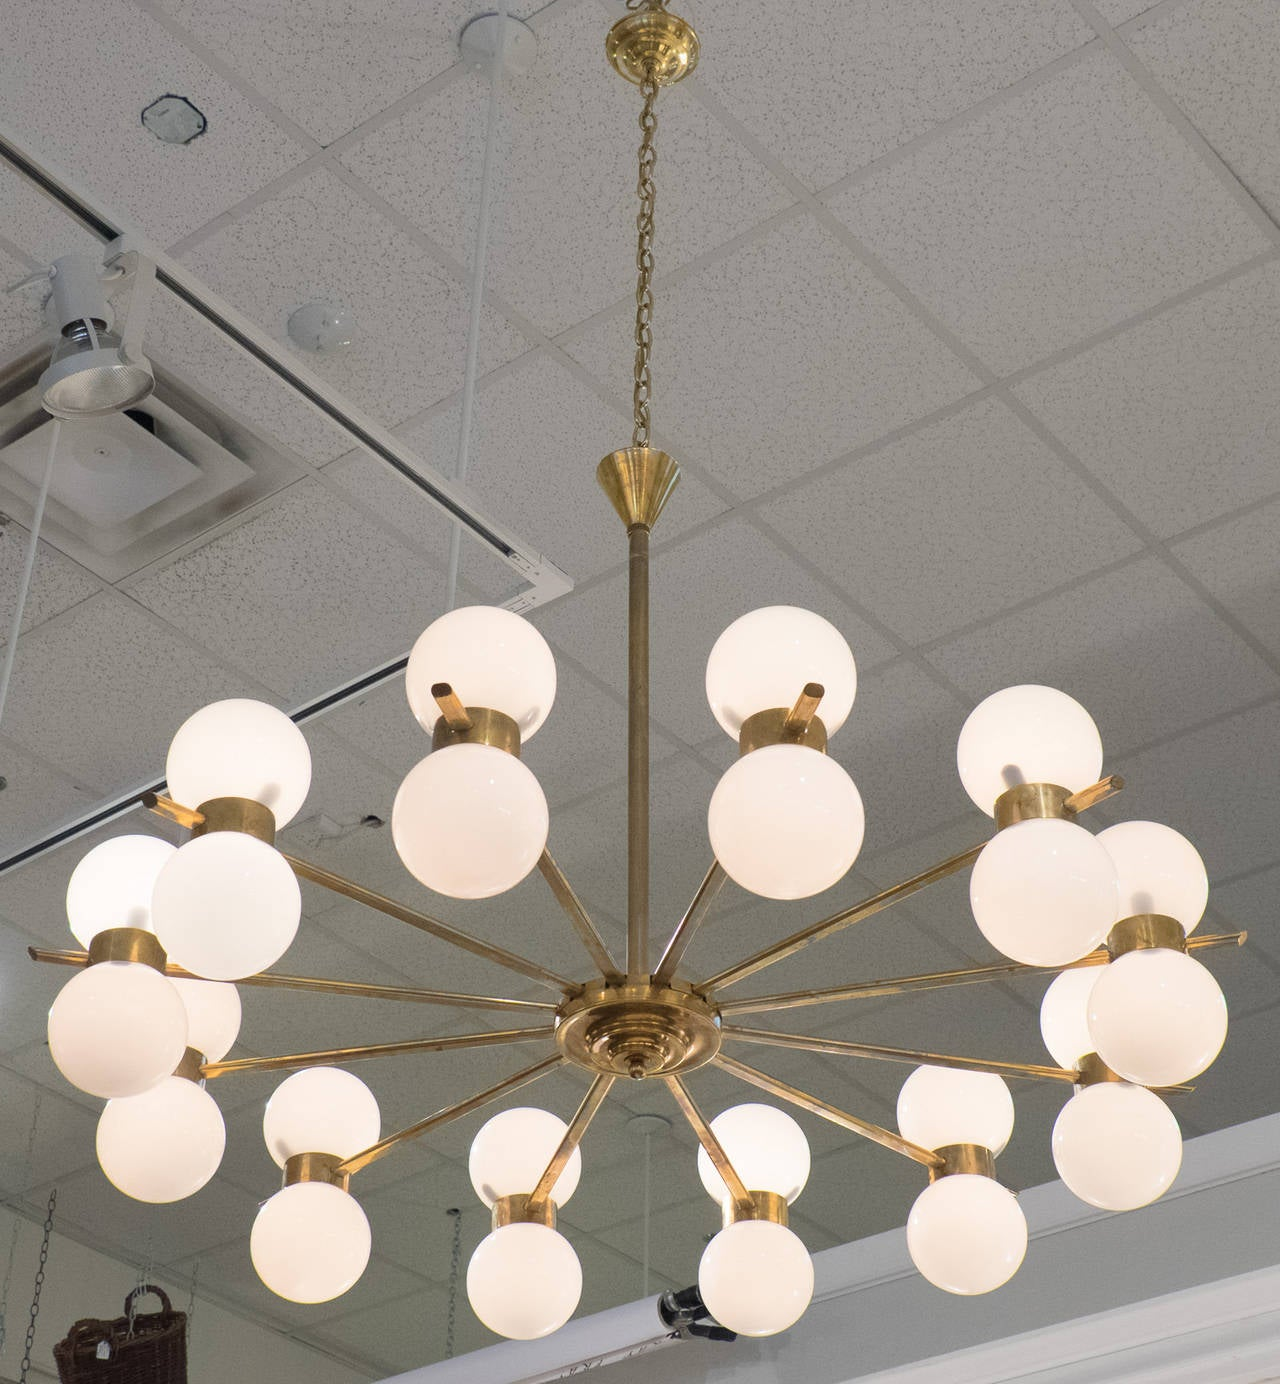 Vintage Twelve-Arm Chandelier in the Style of Stilnovo In Excellent Condition For Sale In Austin, TX